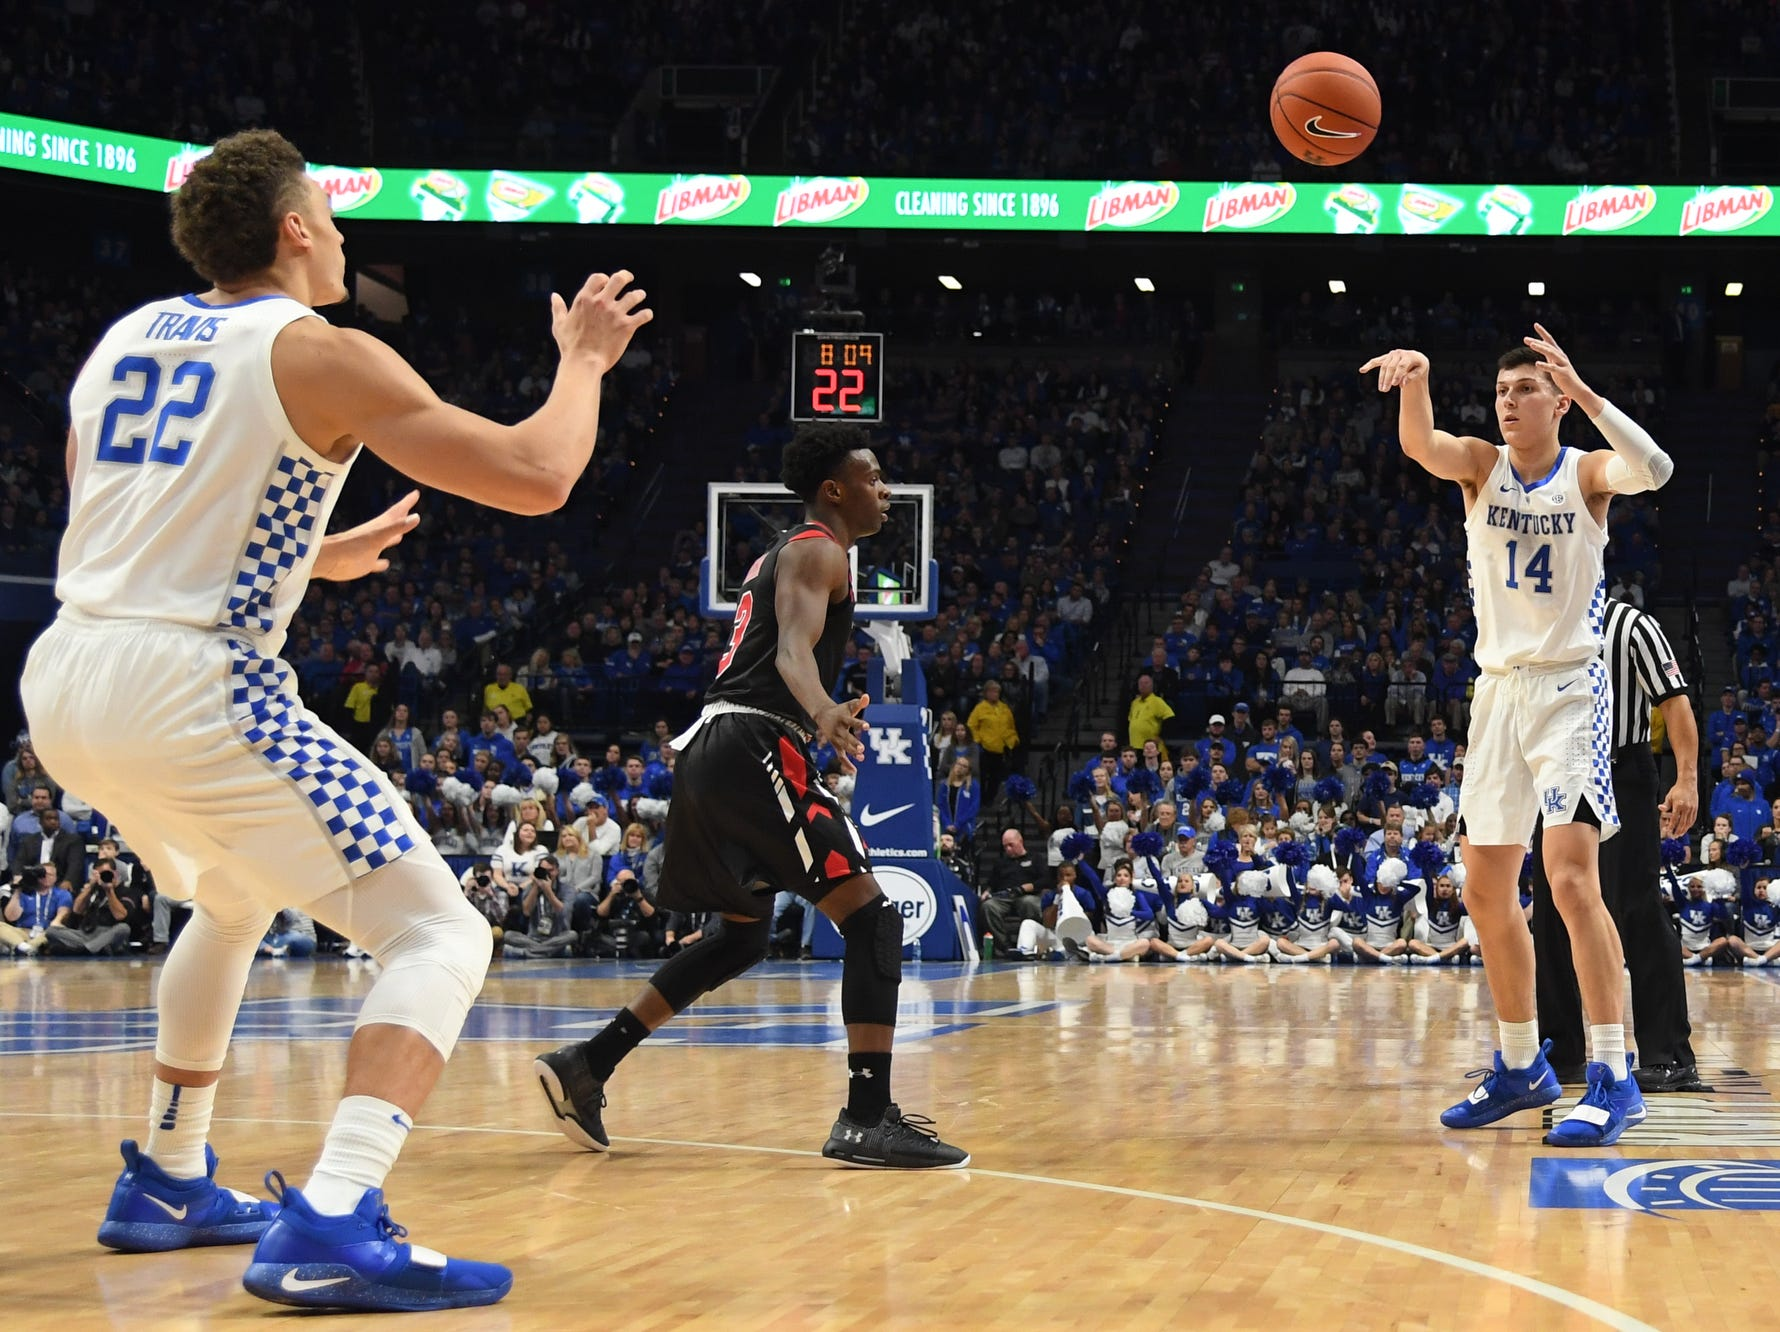 UK G Tyler Herro passes the ball to F Reid Travis during the University of Kentucky mens basketball game against VMI at Rupp Arena in Lexington, Kentucky on Sunday, November 18, 2018.